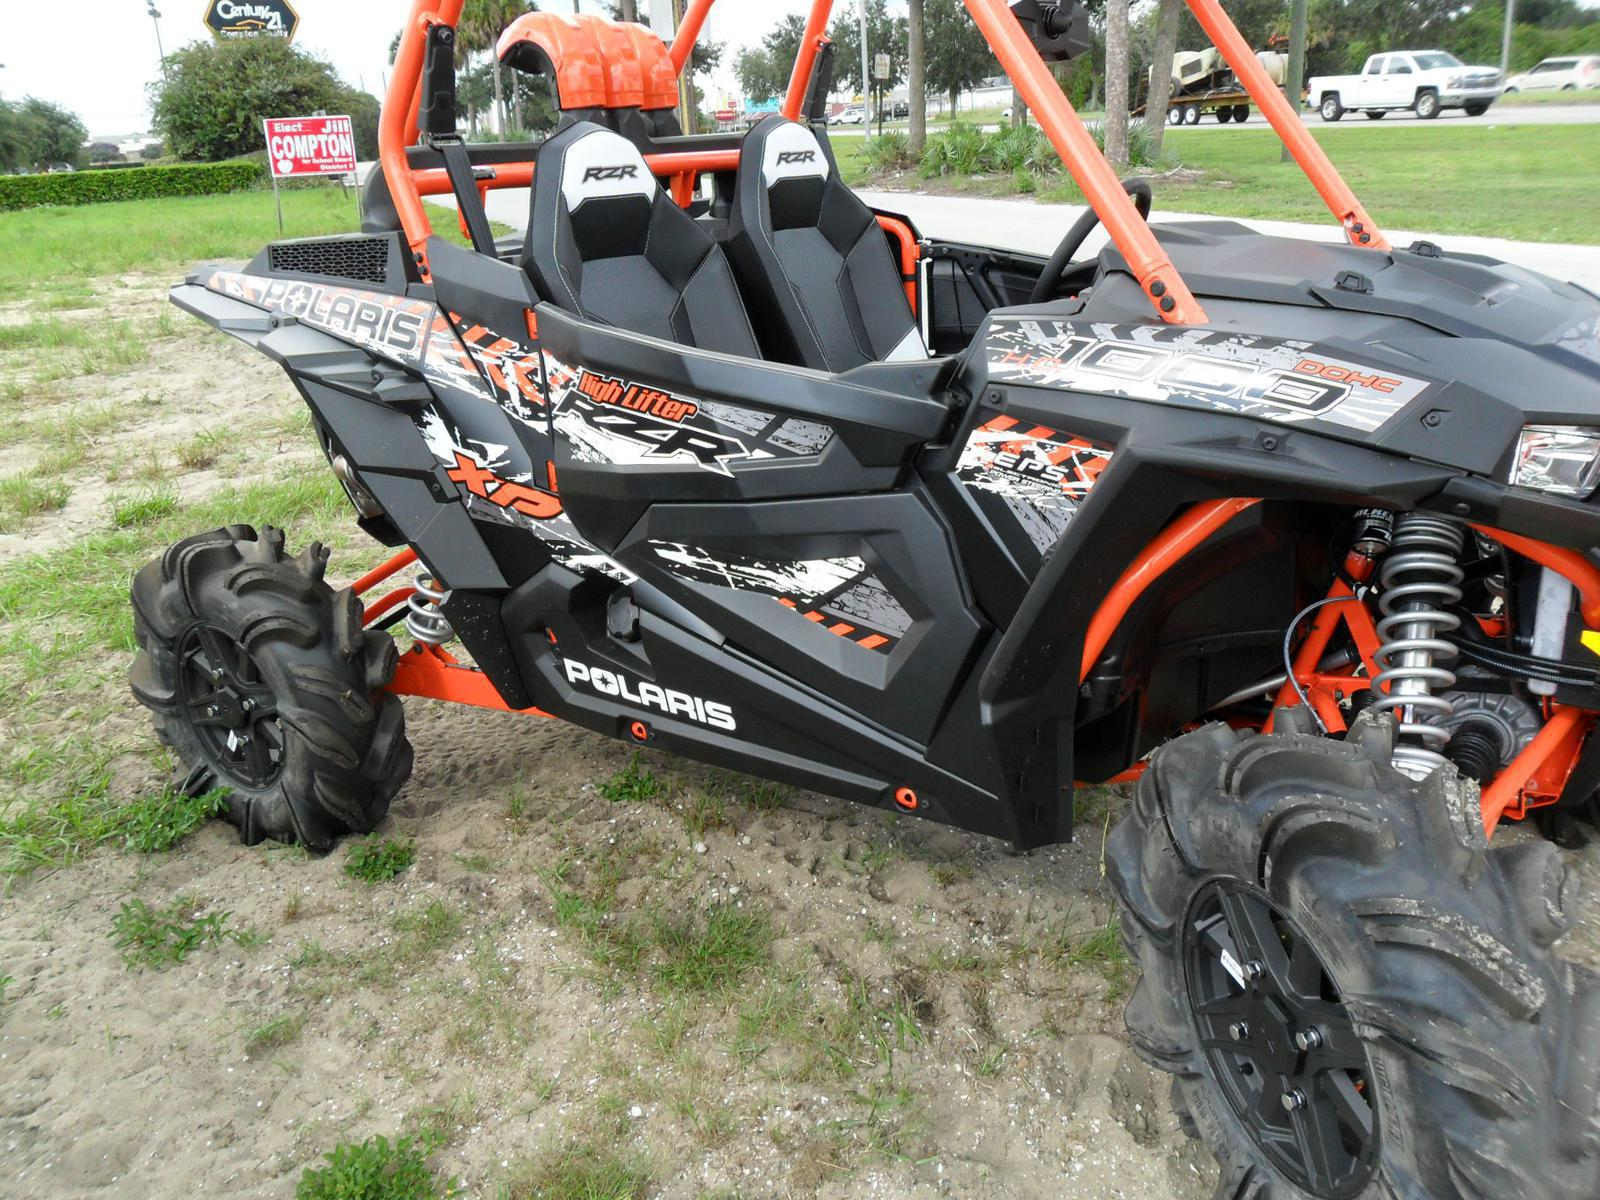 2015 Polaris Razor 1000 High Lifter Edition, motorcycle listing